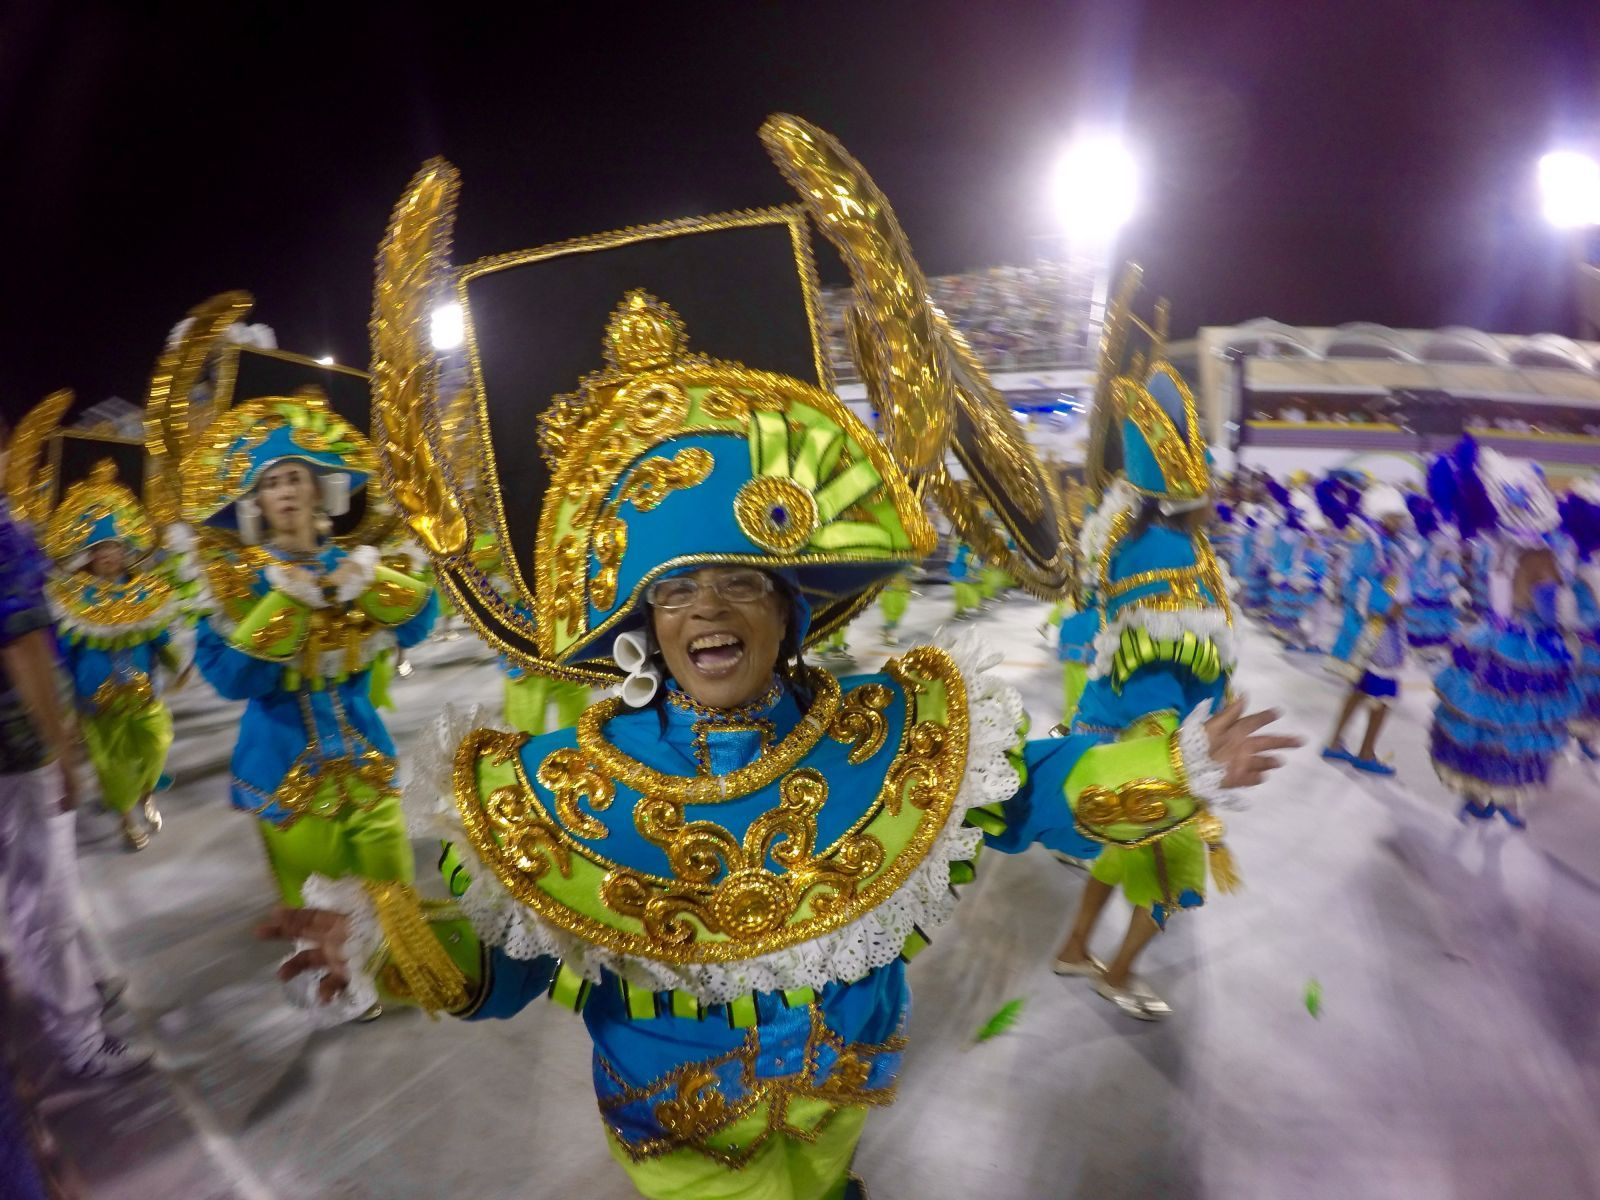 Members of Rio's samba schools don intriciate and colorful costumes and dance the night away in the Sambodrome until the wee hours of the morning.